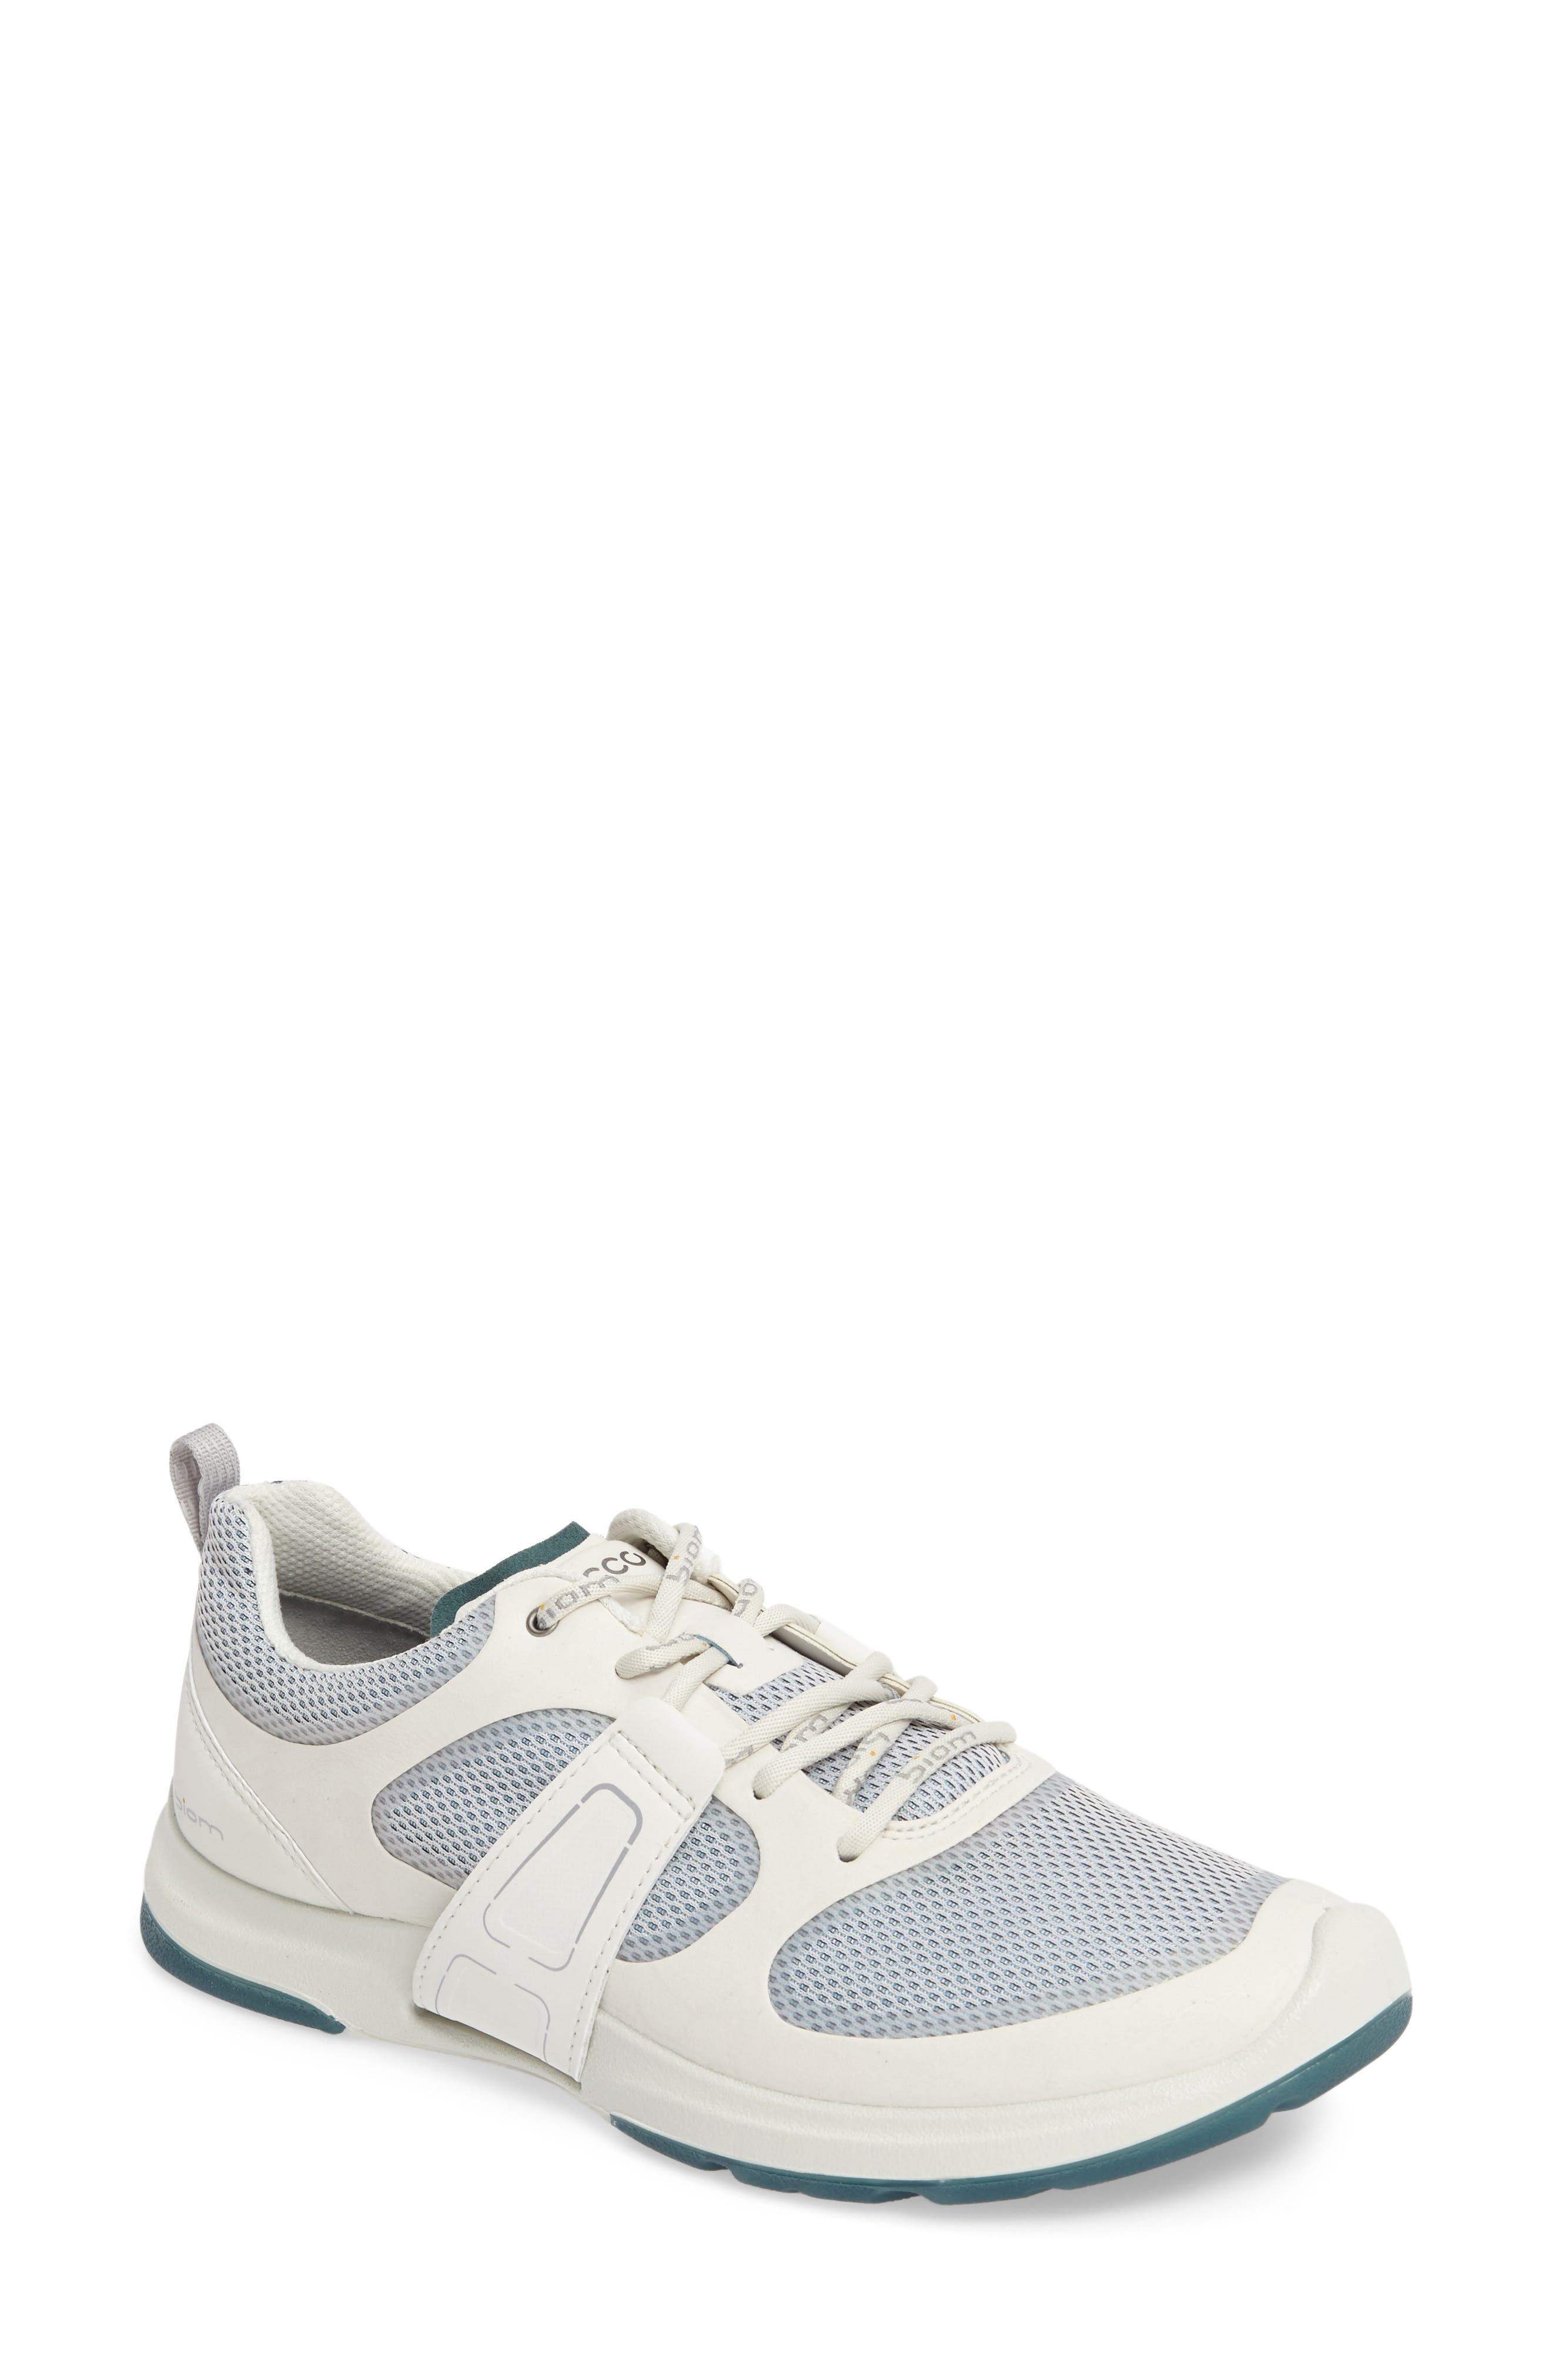 BIOM Amrap Sneaker,                         Main,                         color, SHADOW WHITE LEATHER